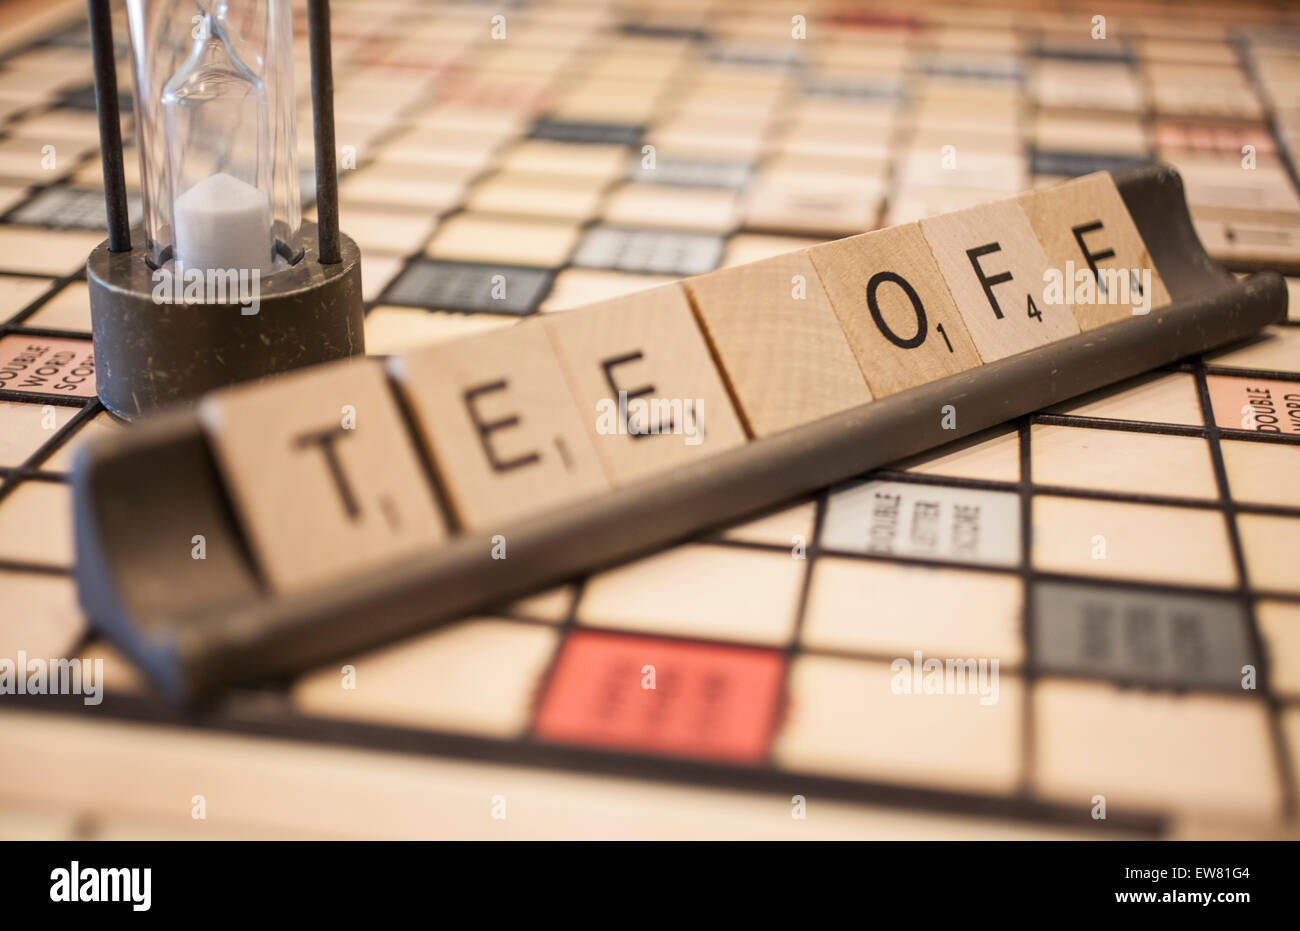 Scrabble game square tiles formed to say Tee Off - Stock Image